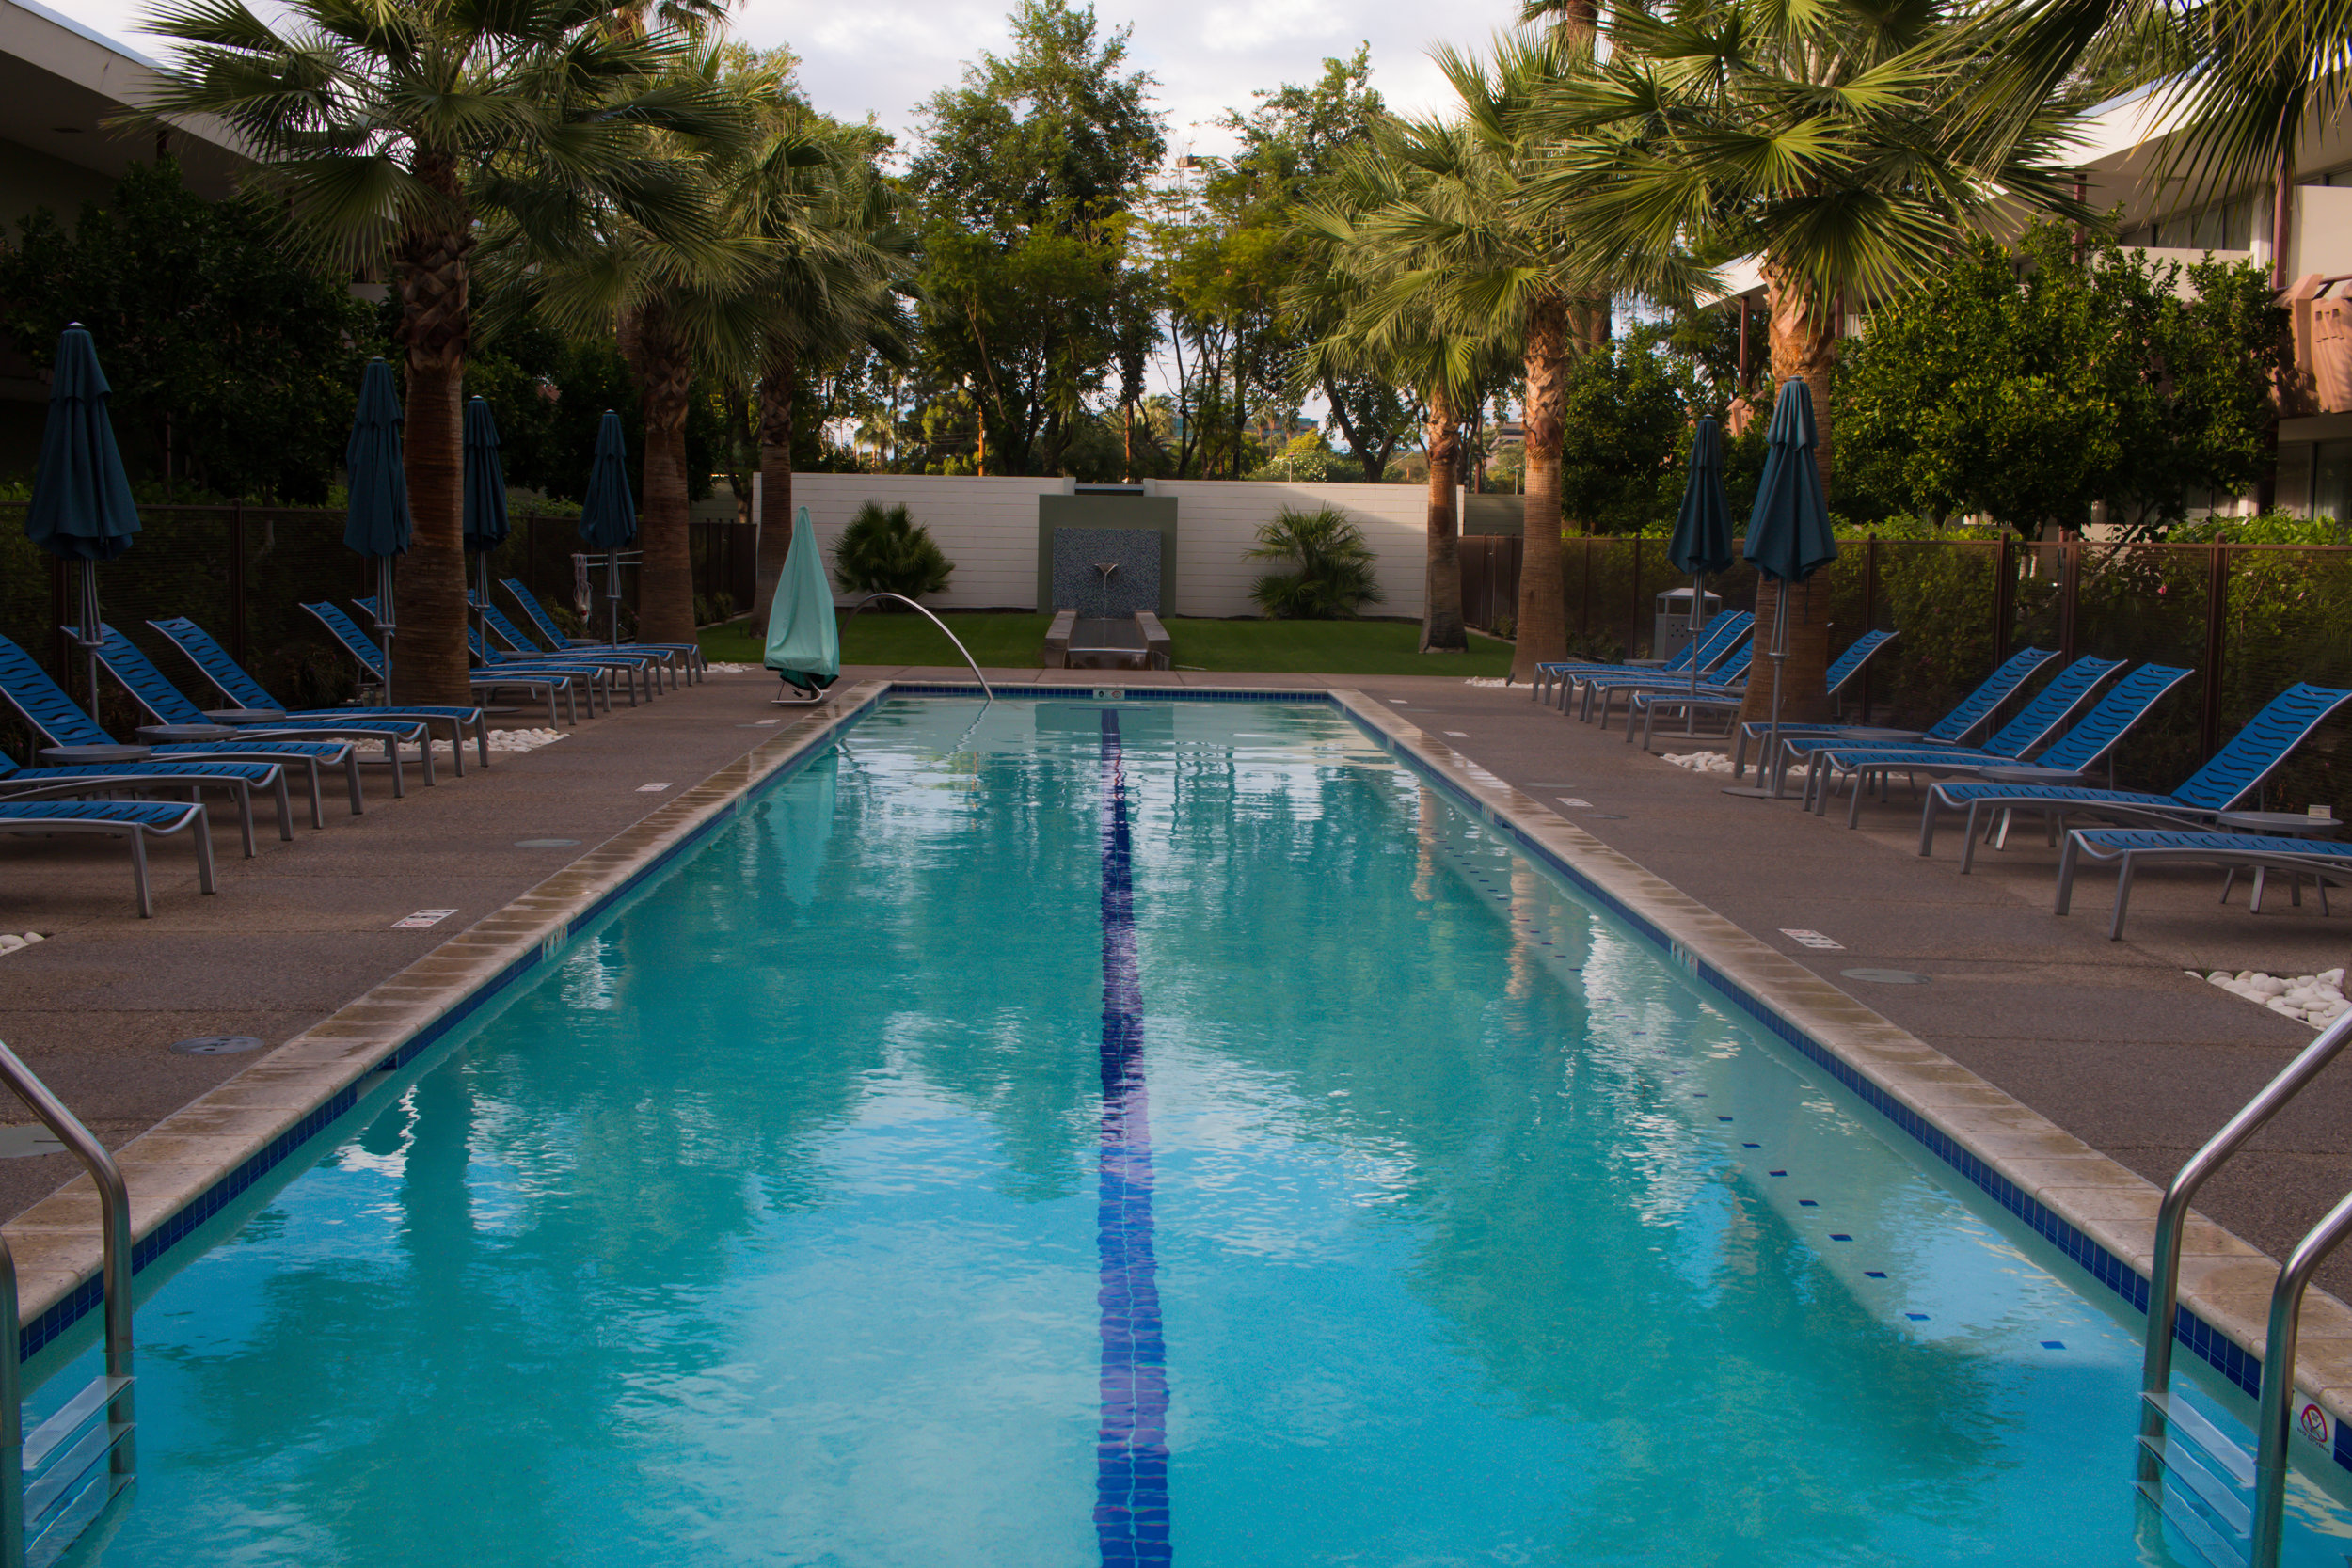 Where To Stay In Scottsdale Hotel Valley Ho Busybeingshasha